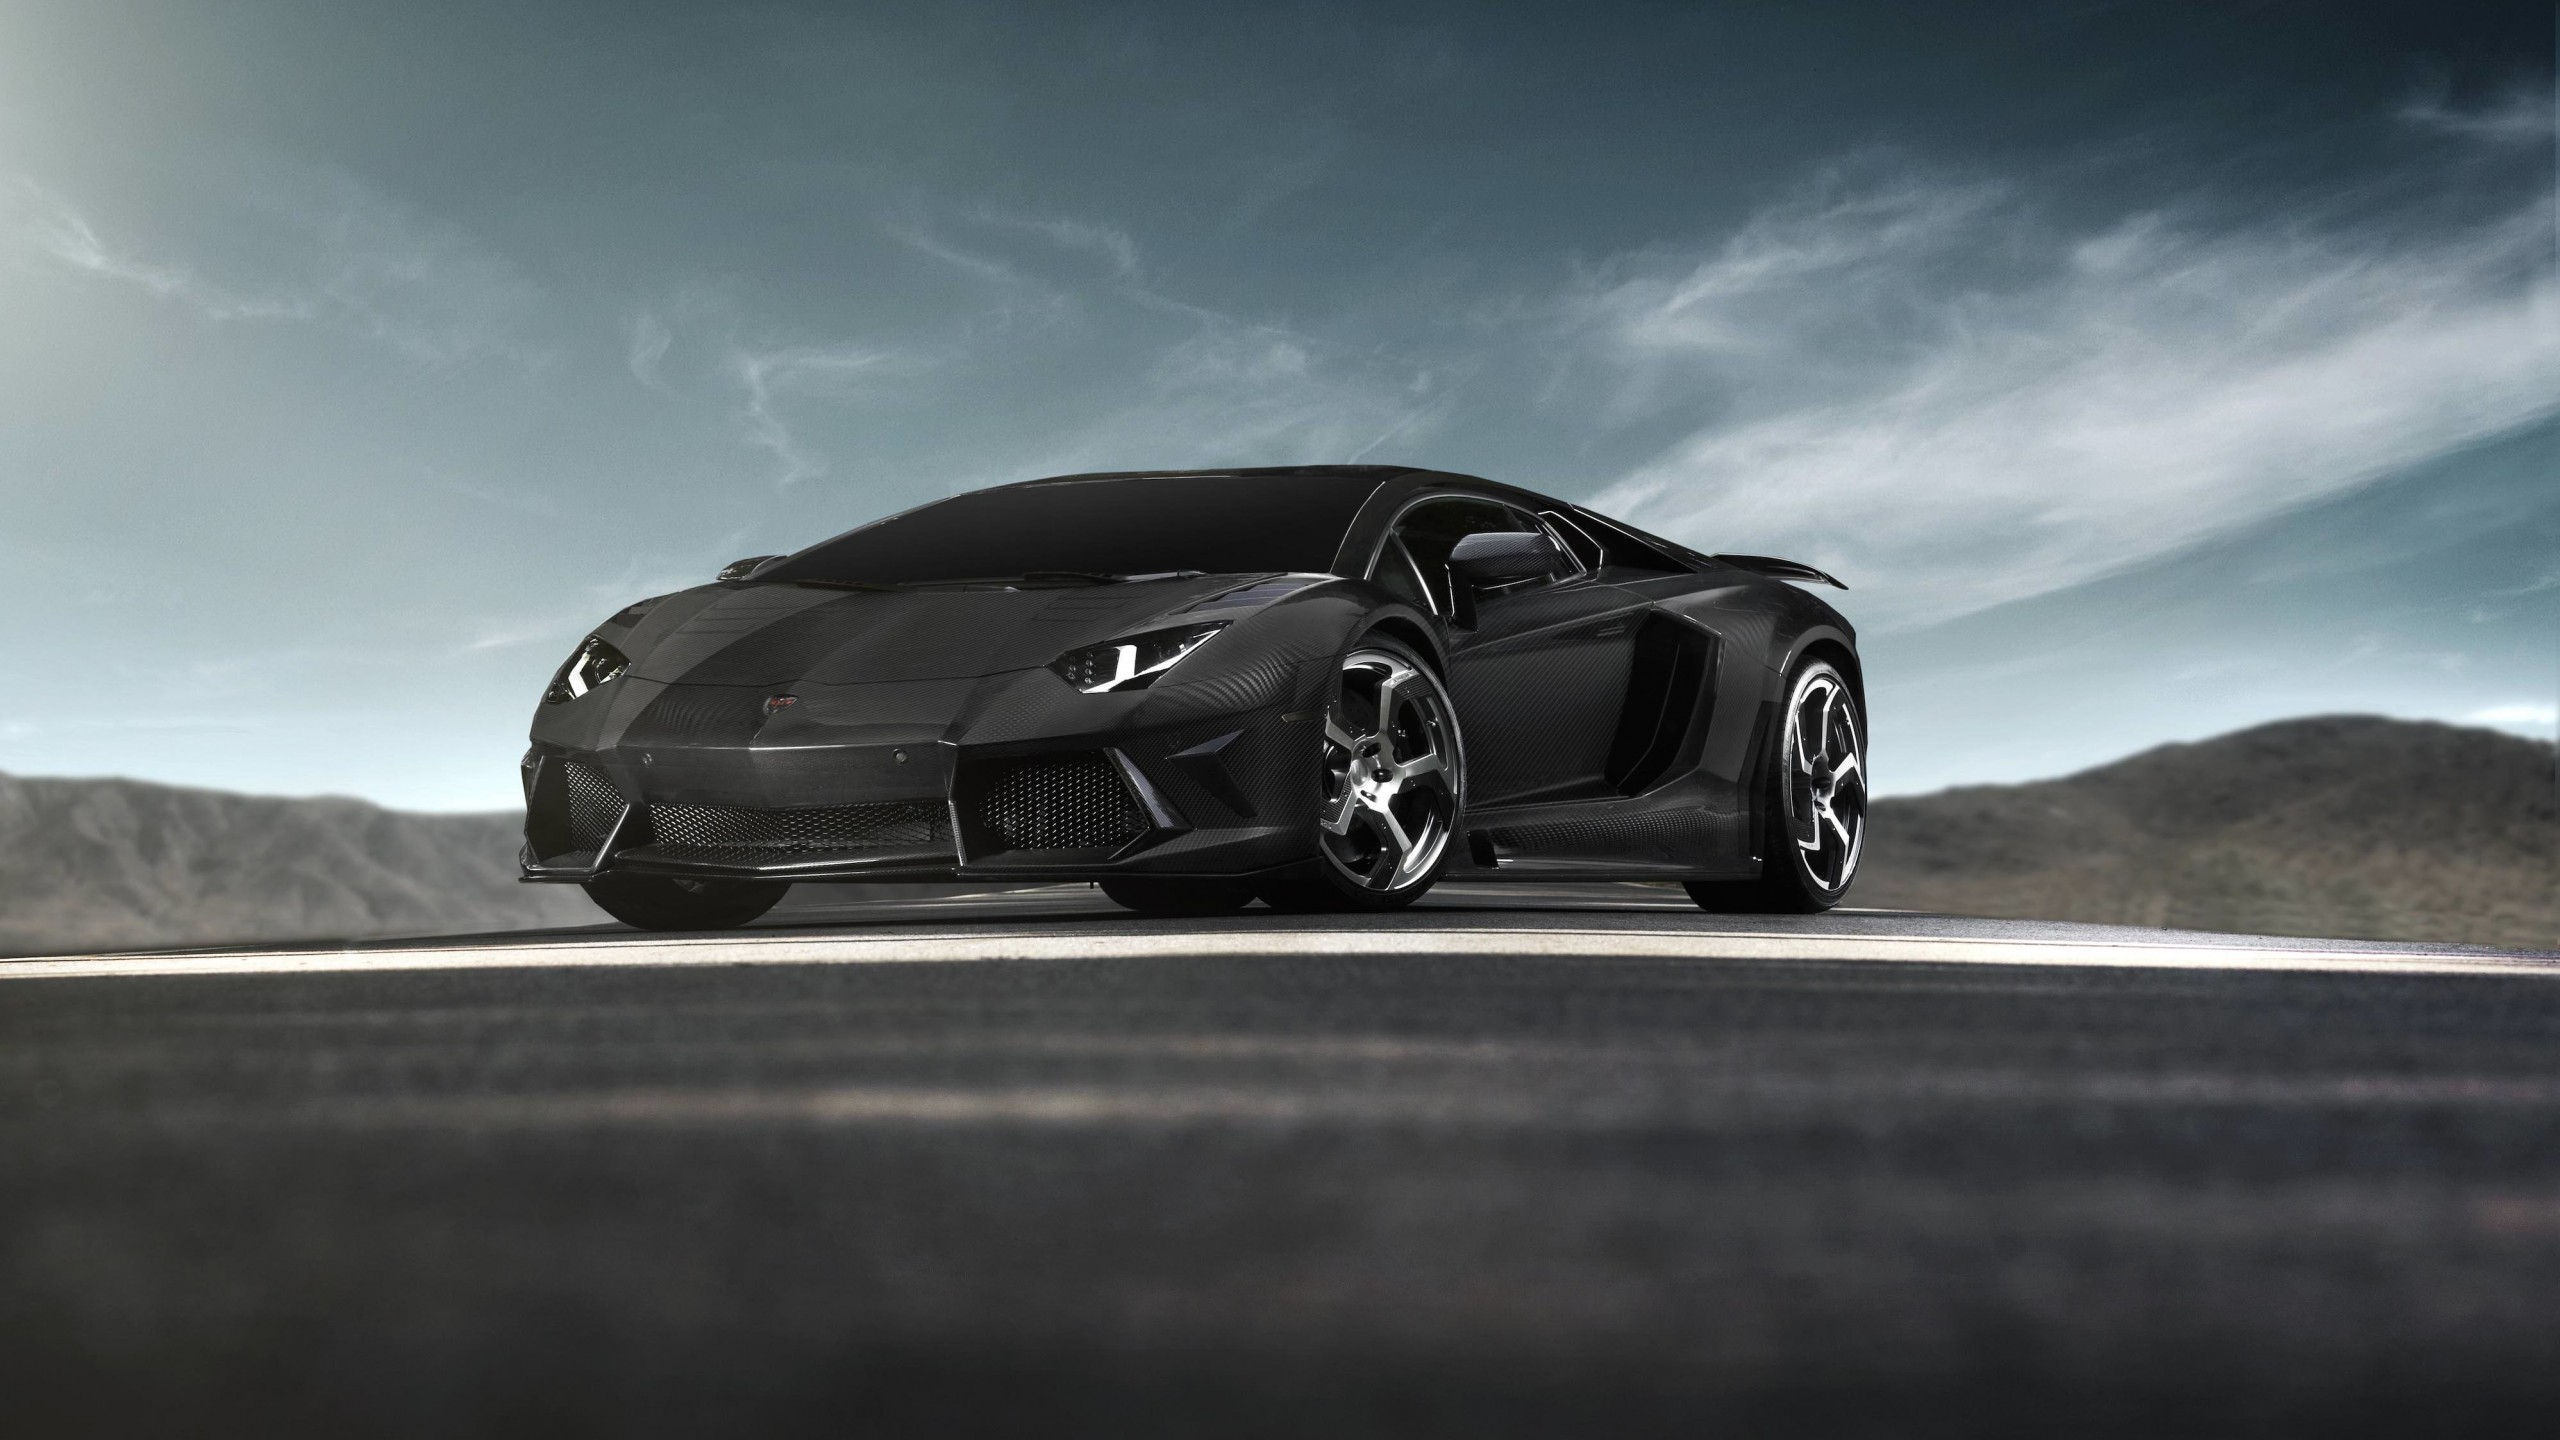 Mansory Carbonado Lamborghini Aventador LP700-4 Wallpaper for Desktop 2560x1440